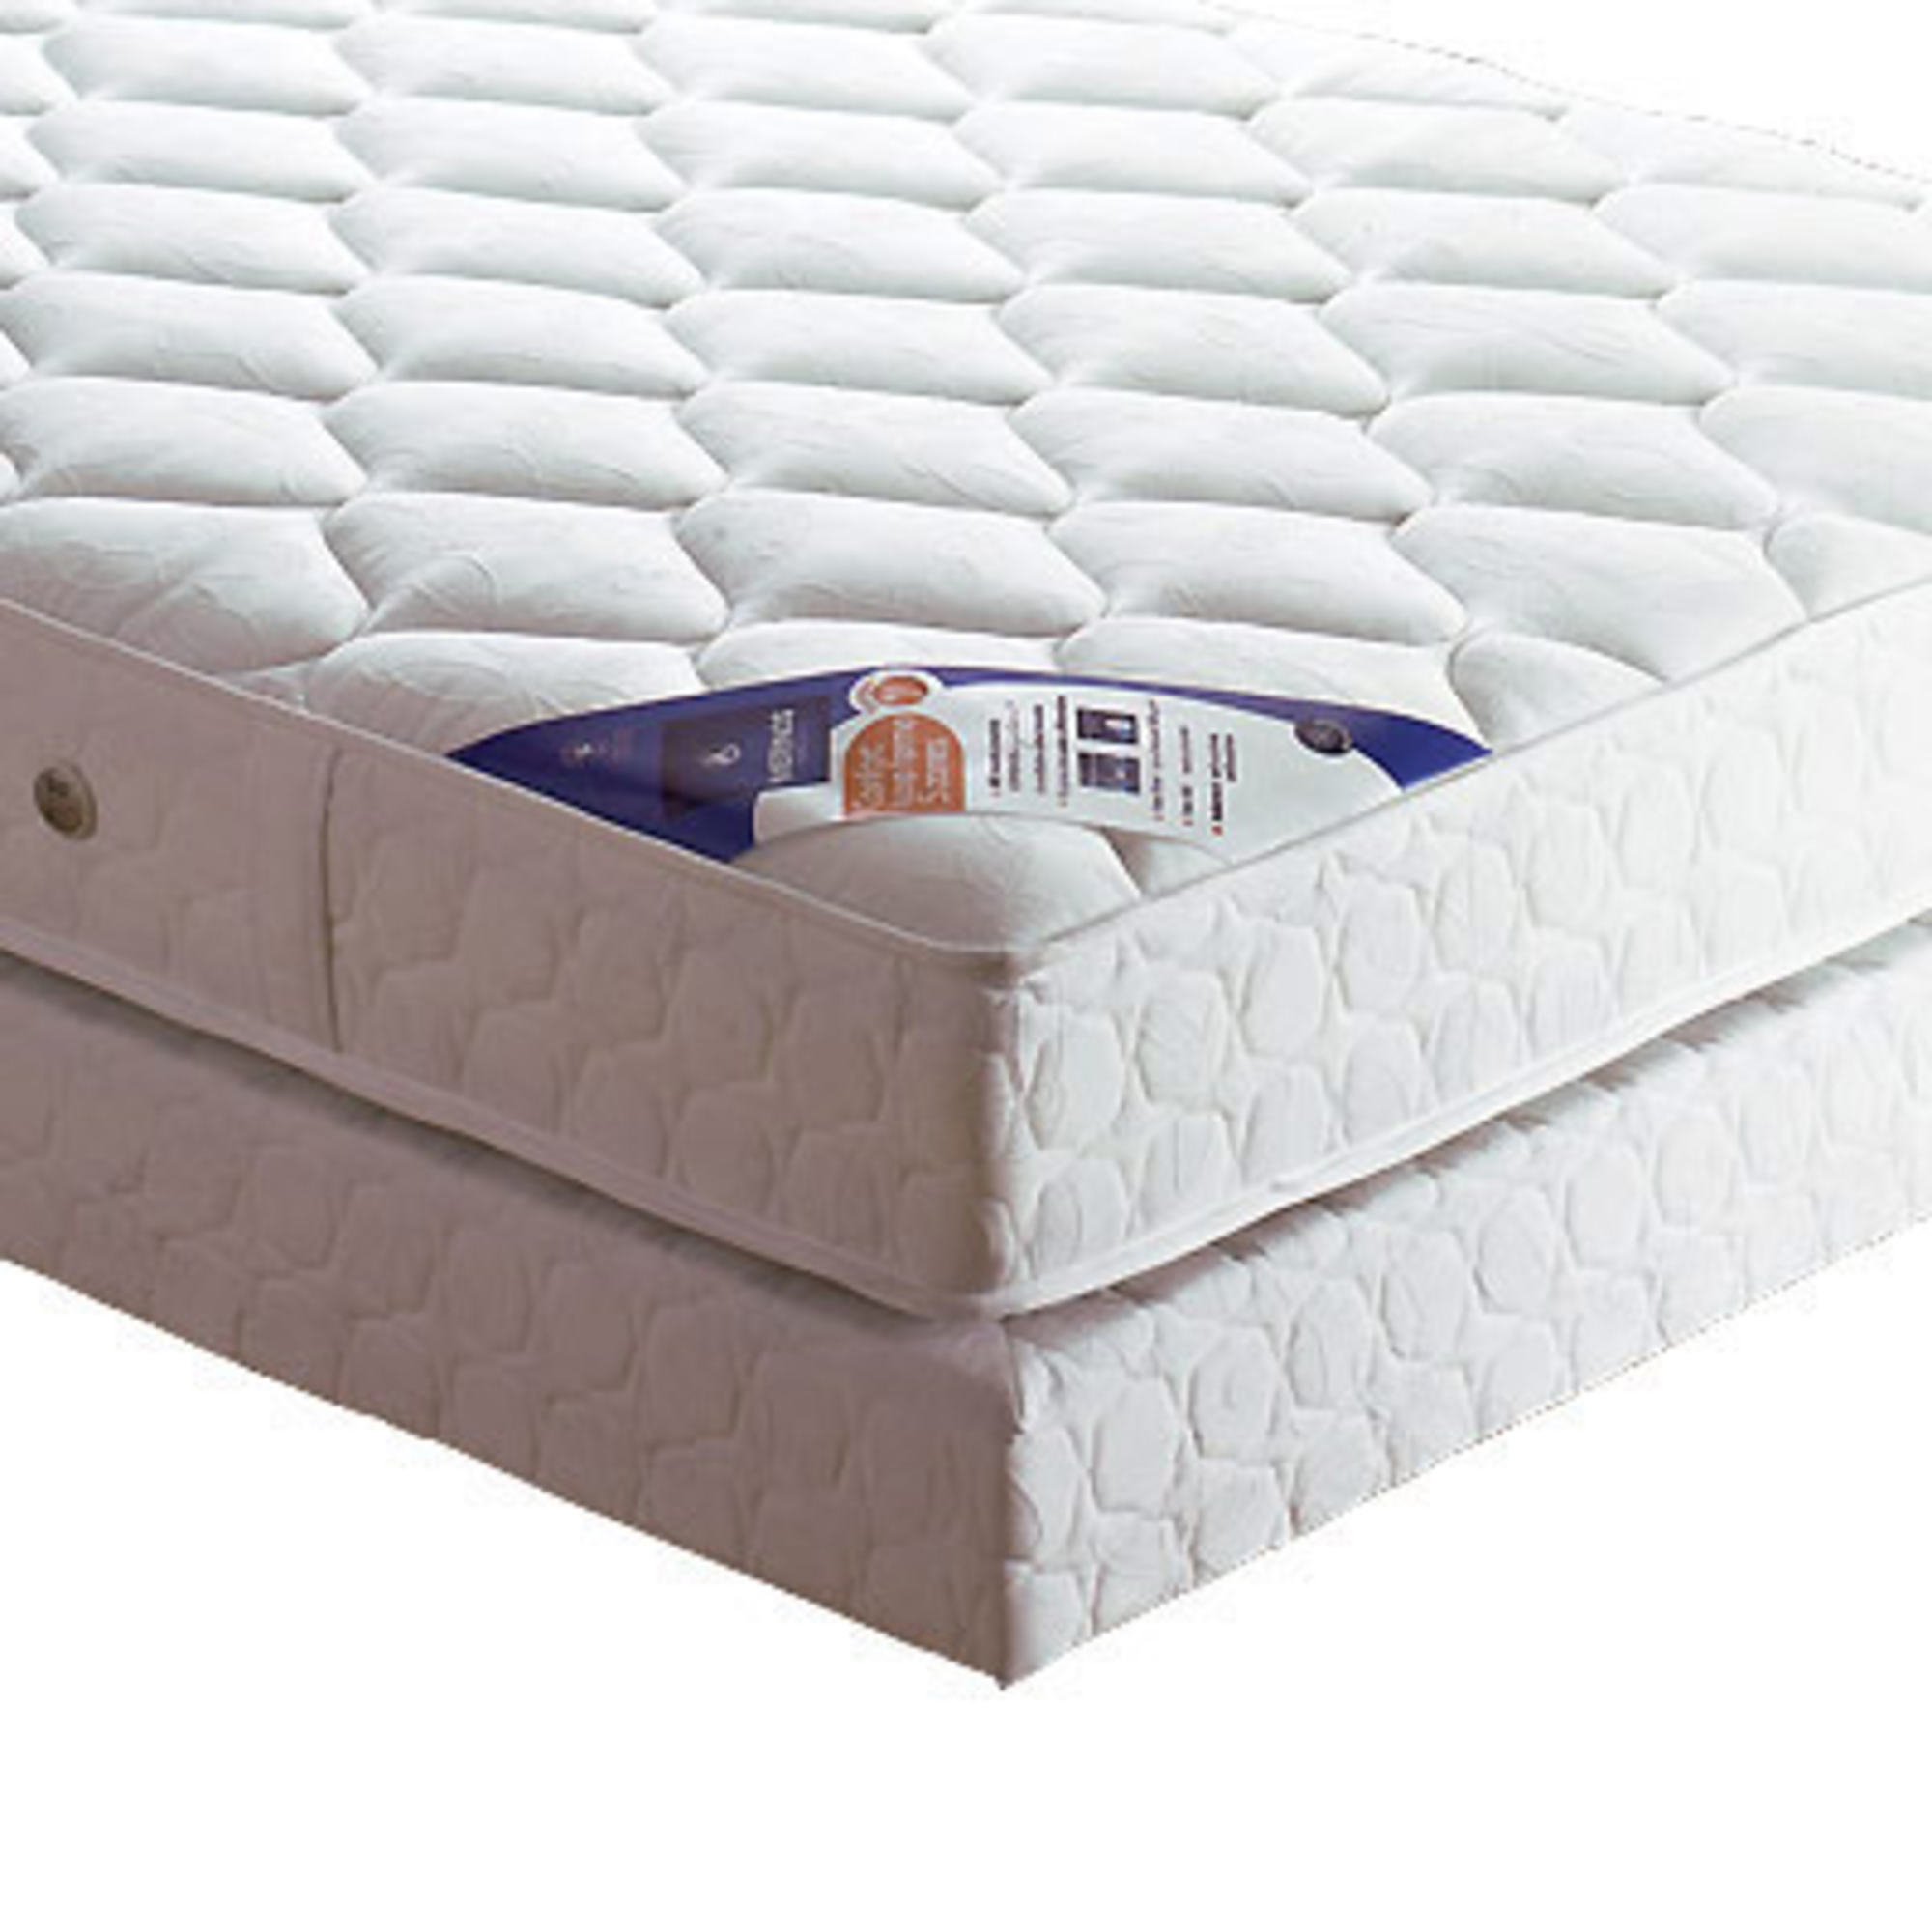 Grand Matelas Matelas Grand Confort Matelas Latex Dos Sensible Zones